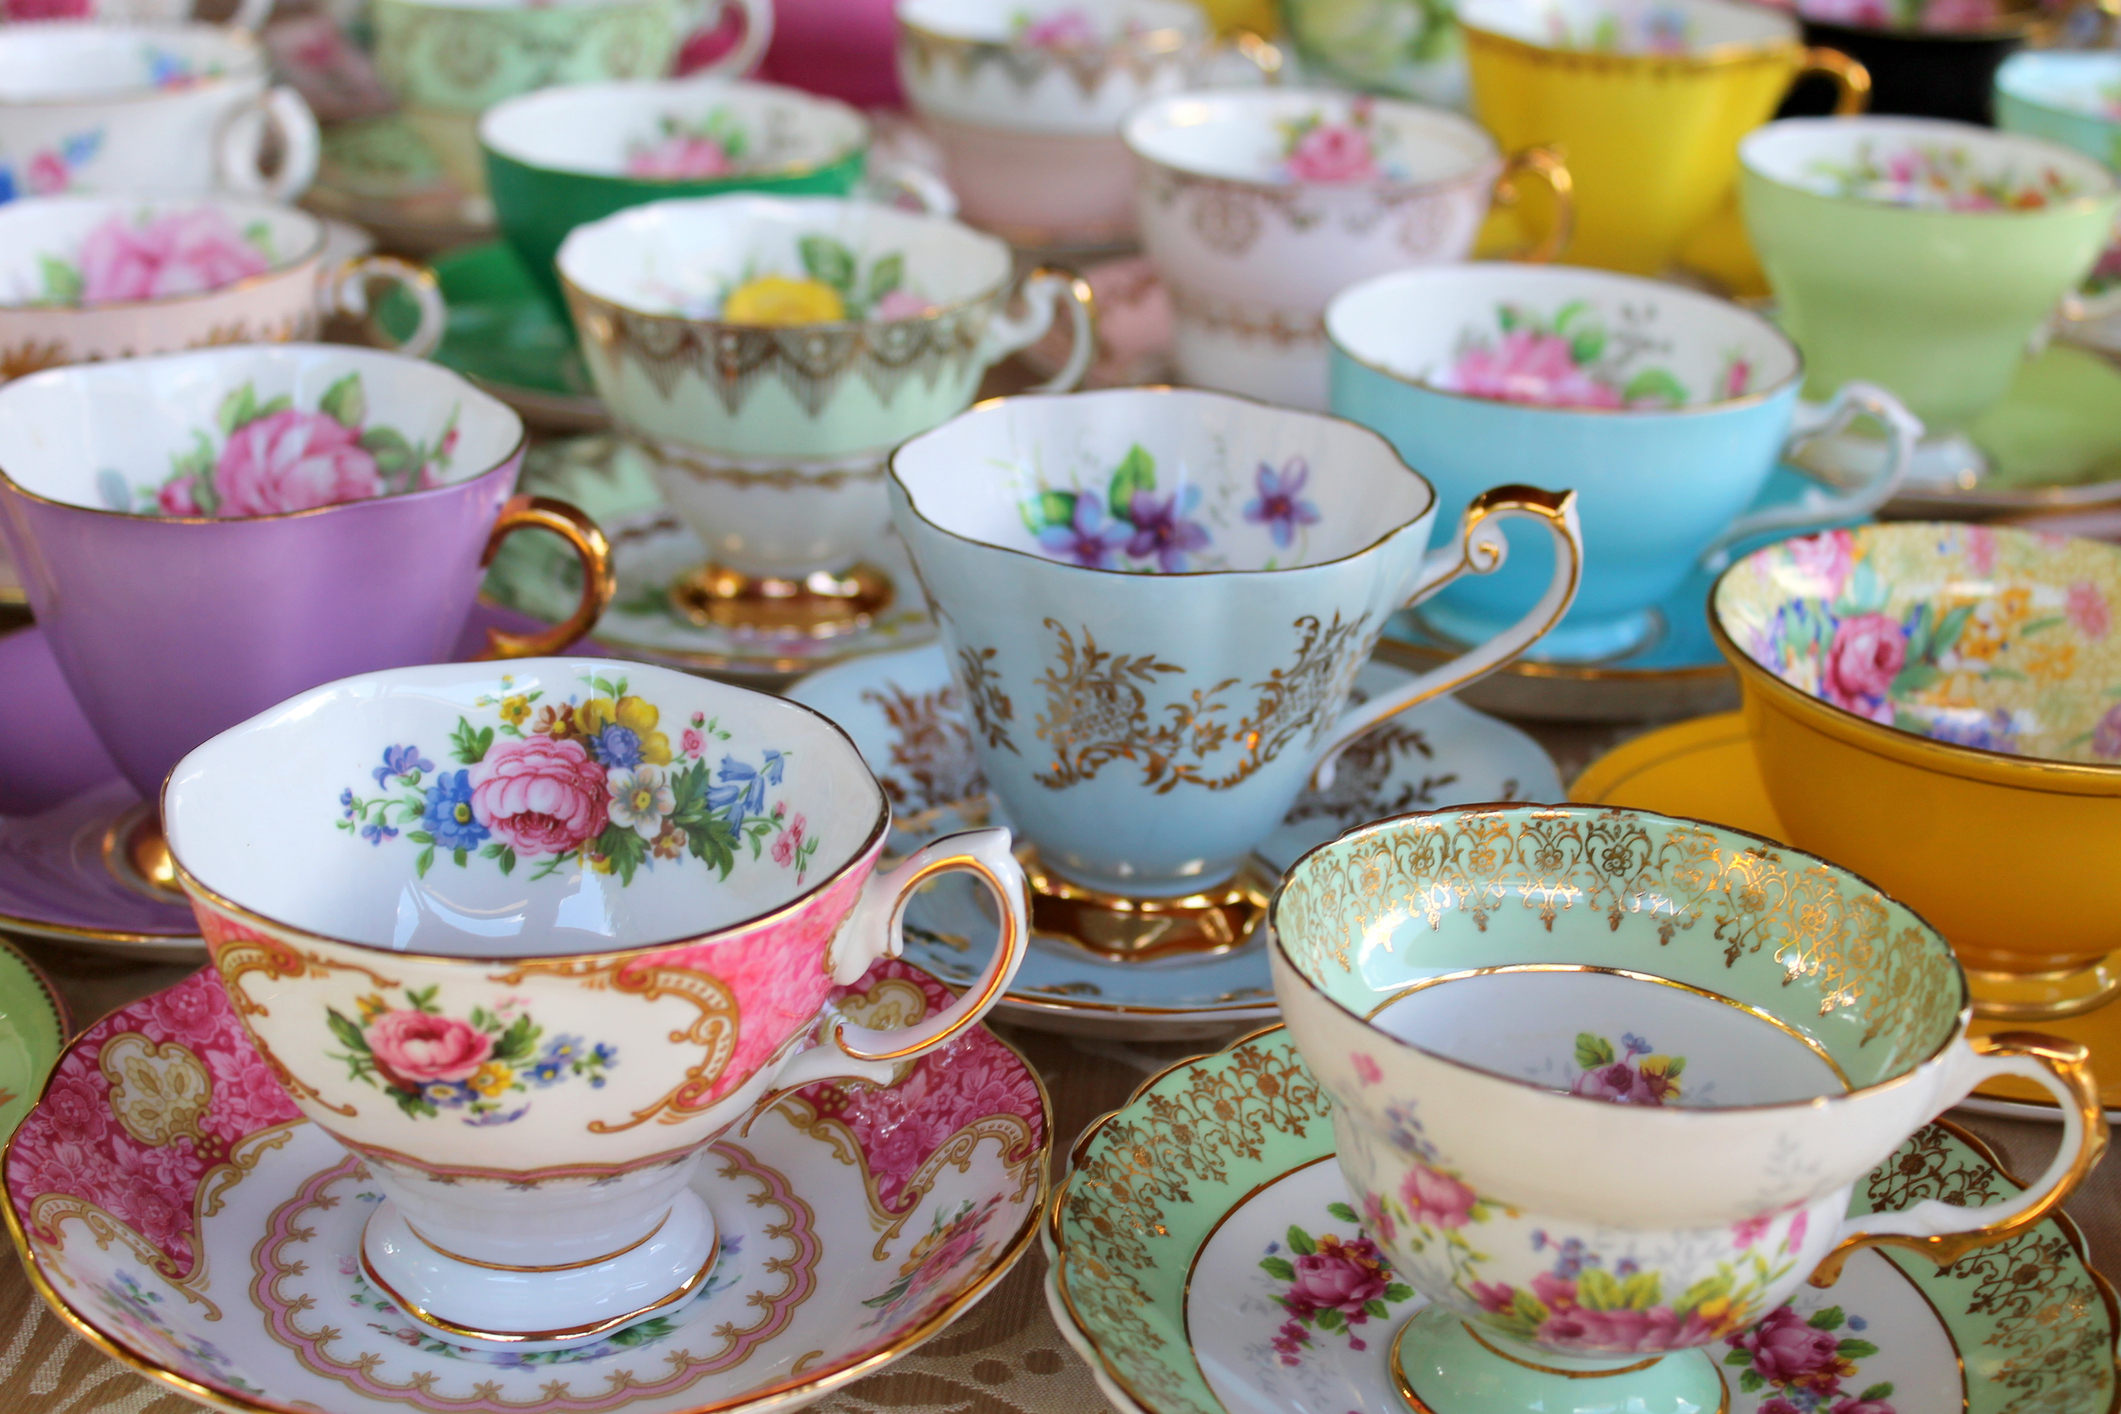 Pretty-pastel-vintage-tea-cups-in-rows-and-stacked-658178856_2125x1417.jpeg